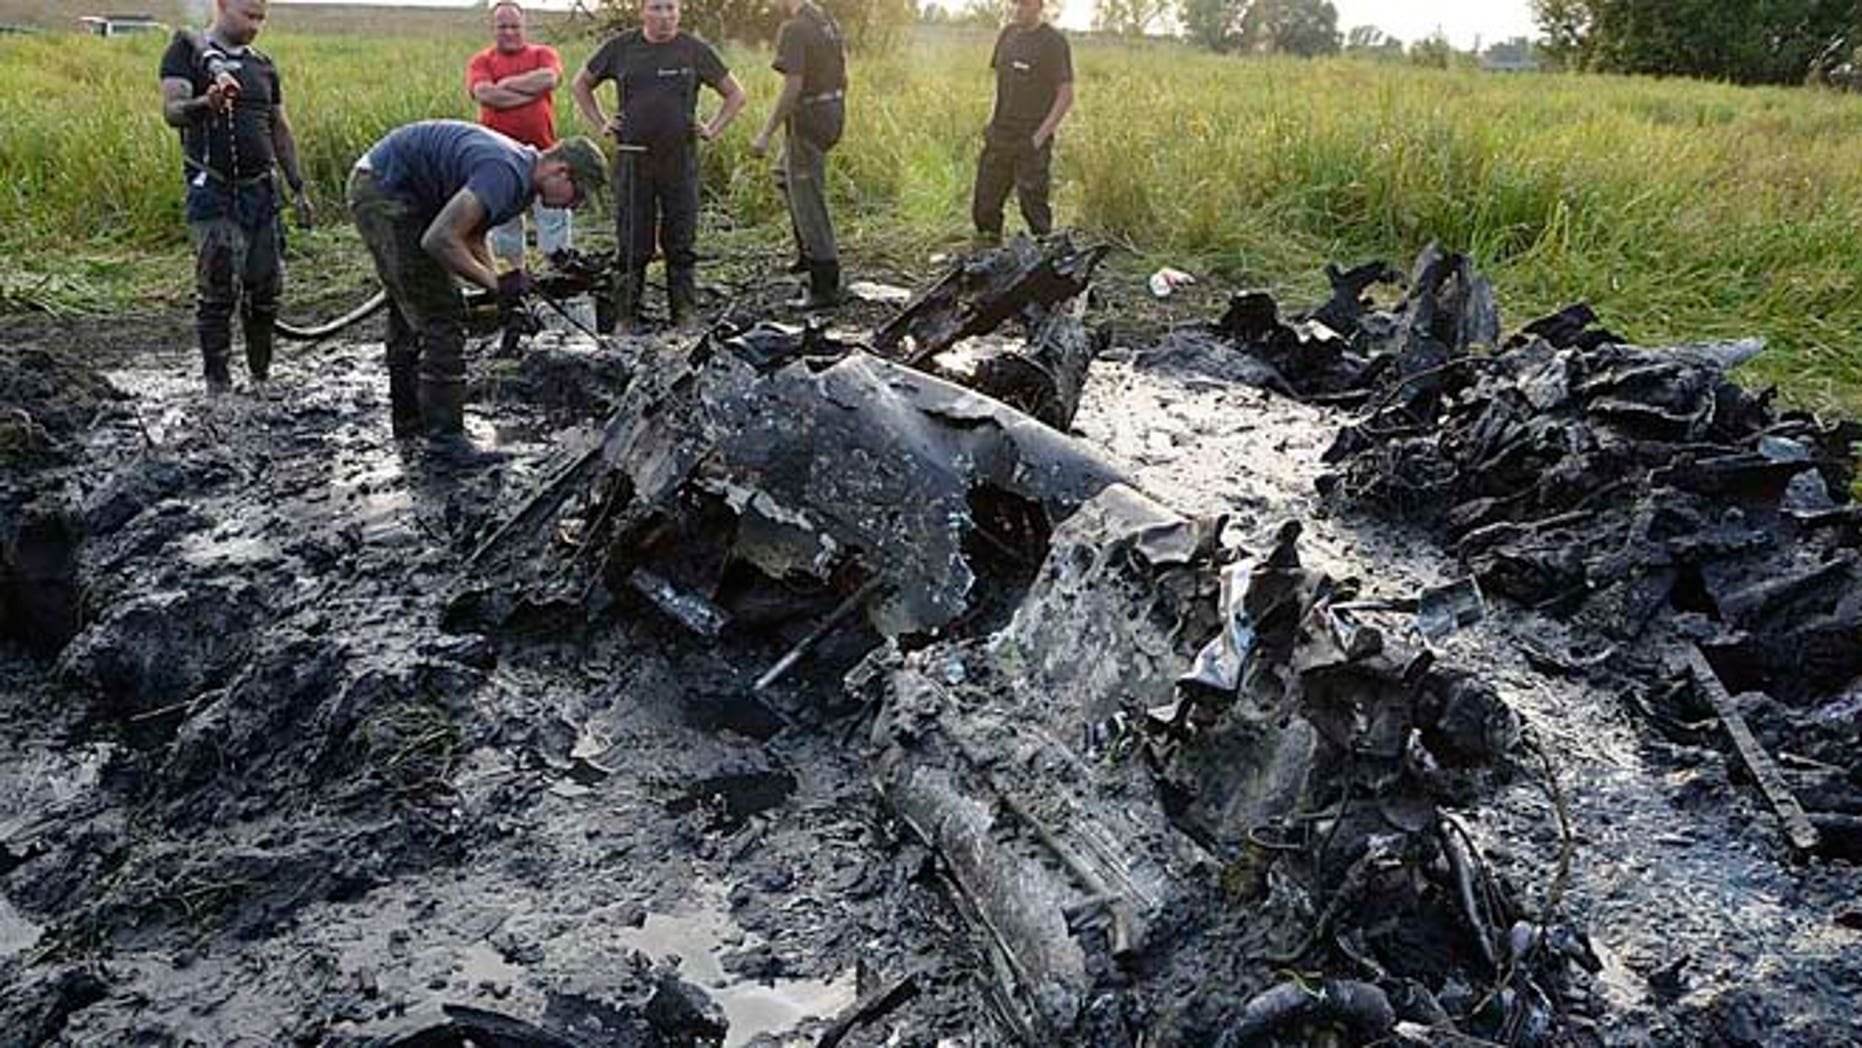 Aug. 23, 2015: Firefighters are retrieving the remains of a Soviet WW II fighter-bomber plane from muddy riverbed near Wyszogrod, Poland.